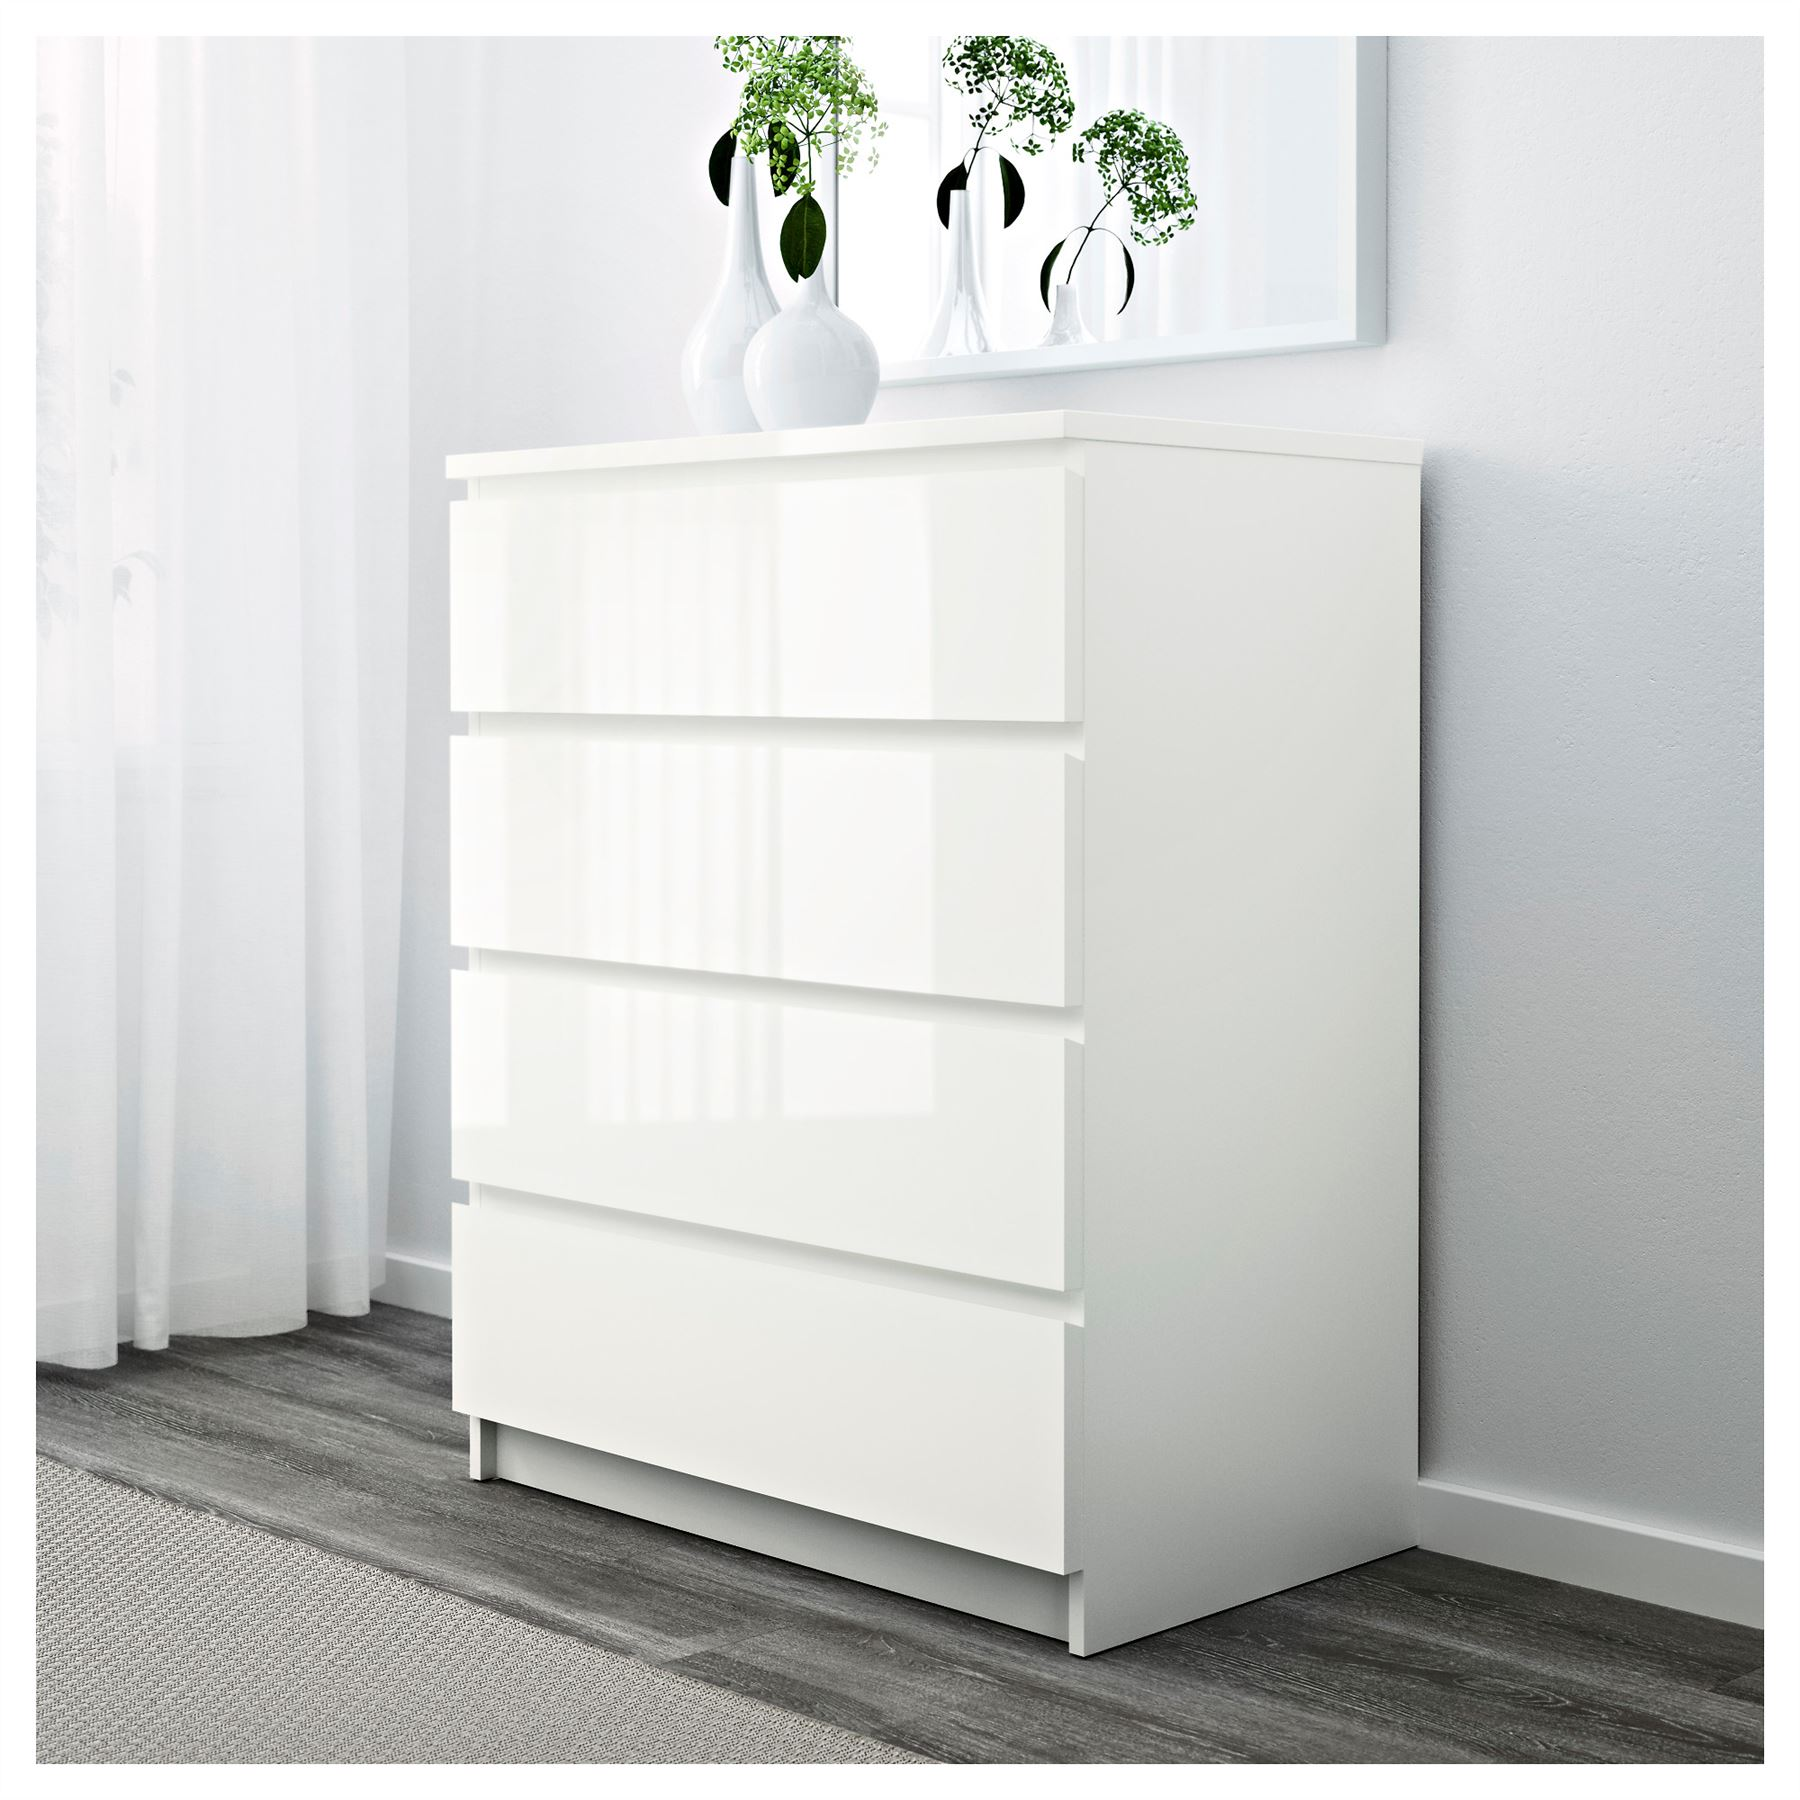 Ikea Malm Chest Of 4 Drawers 80x100cm White High Gloss Bedroom Furniture Ebay